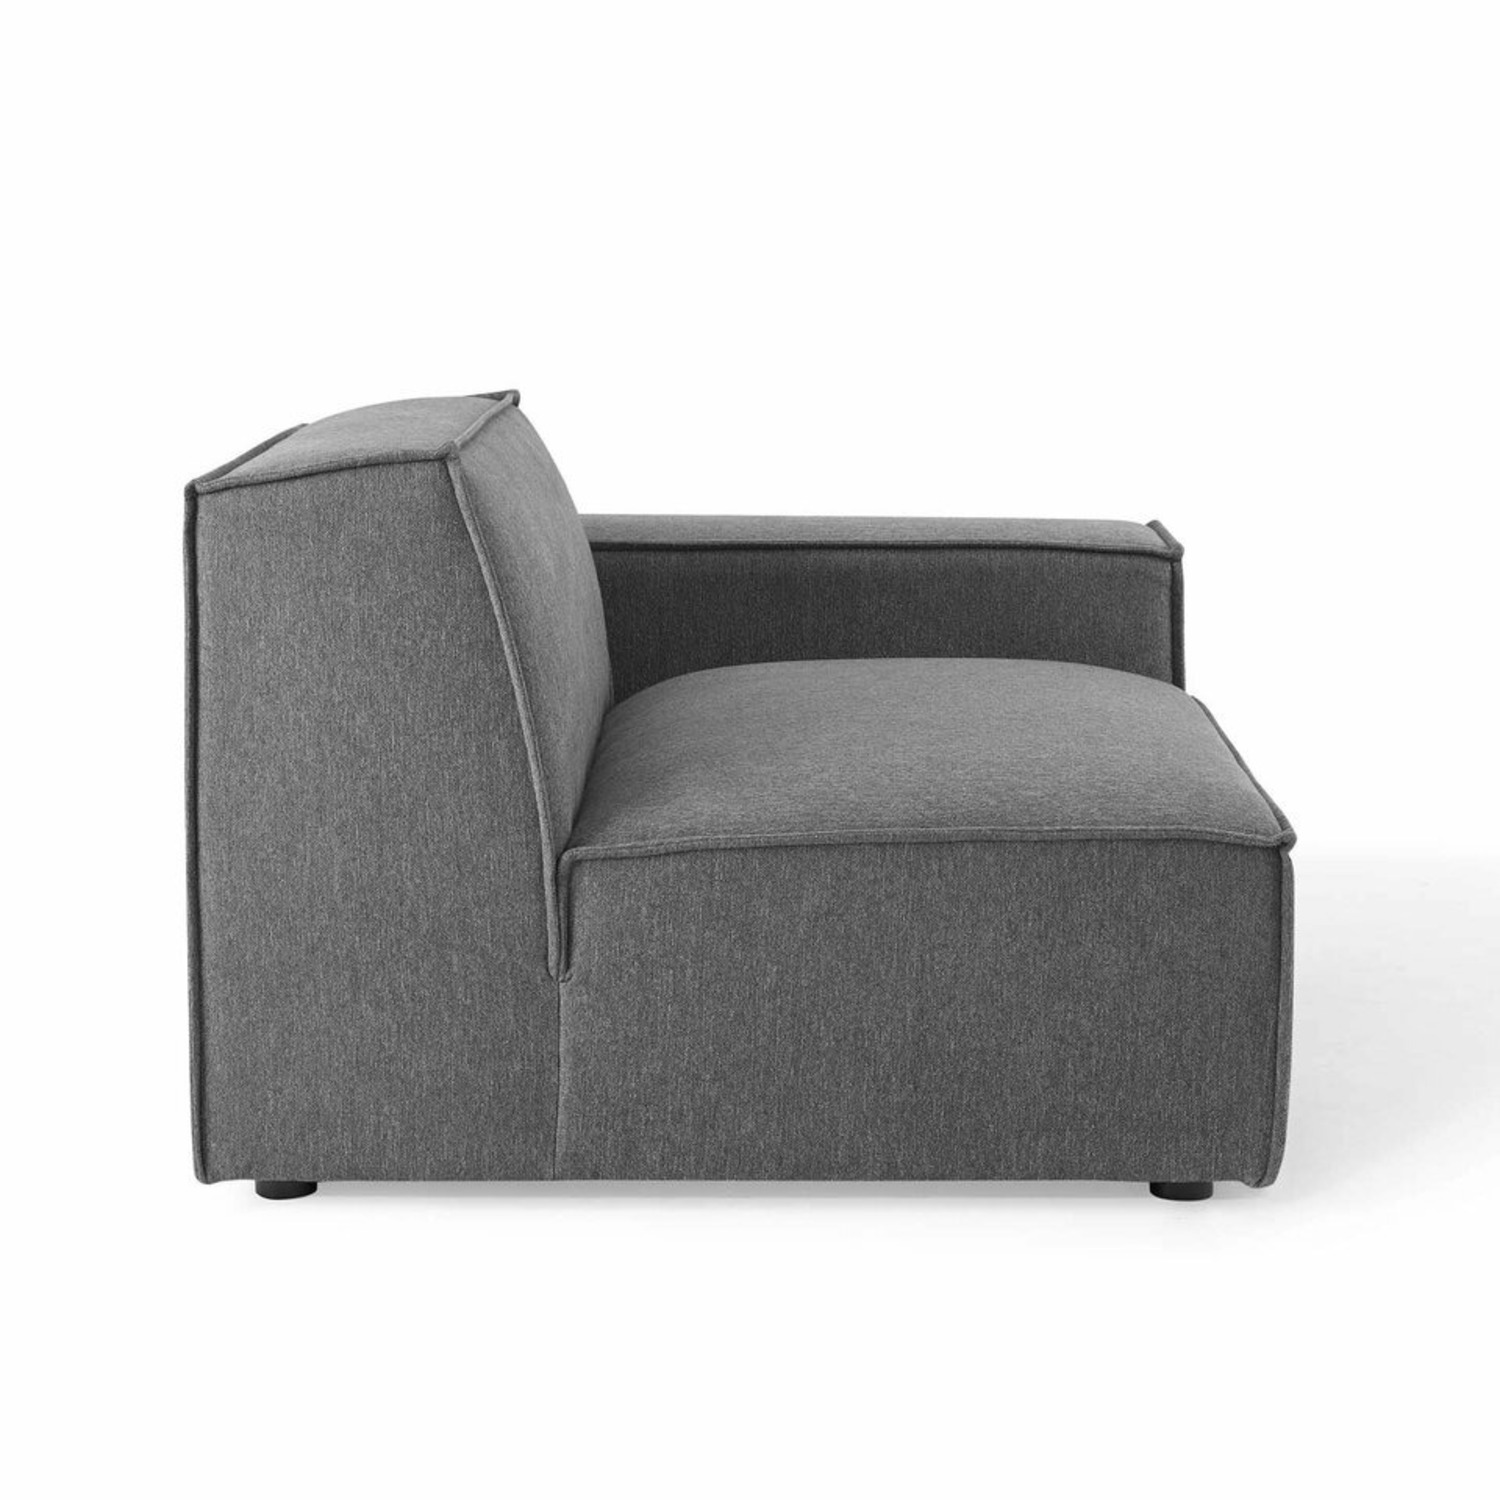 8-Piece Sectional Sofa In Charcoal Fabric Finish - image-2